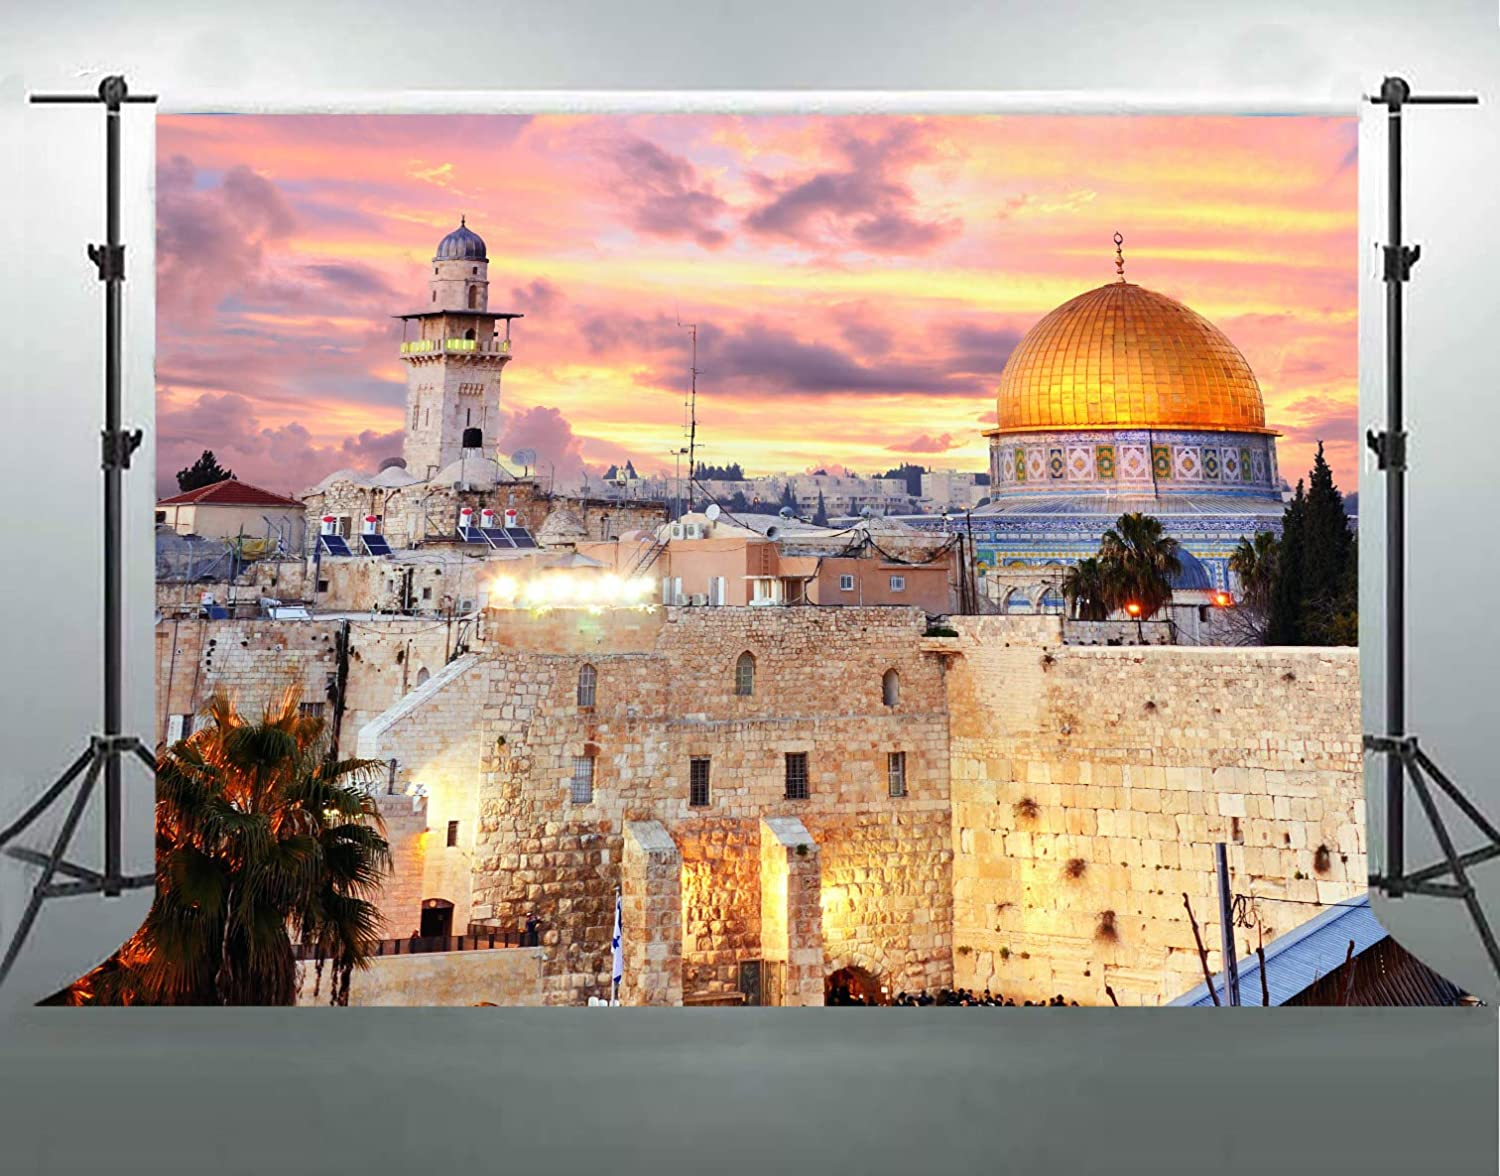 Jerusalem Cityscape Backgrounds for Photography, 7x5ft Soft Cotton No Wrinkle, Sunset Dome of The Rock Cityscape Backdrop, Party Room Decor Banner, YouTube Photo Shooting Props DSFS019